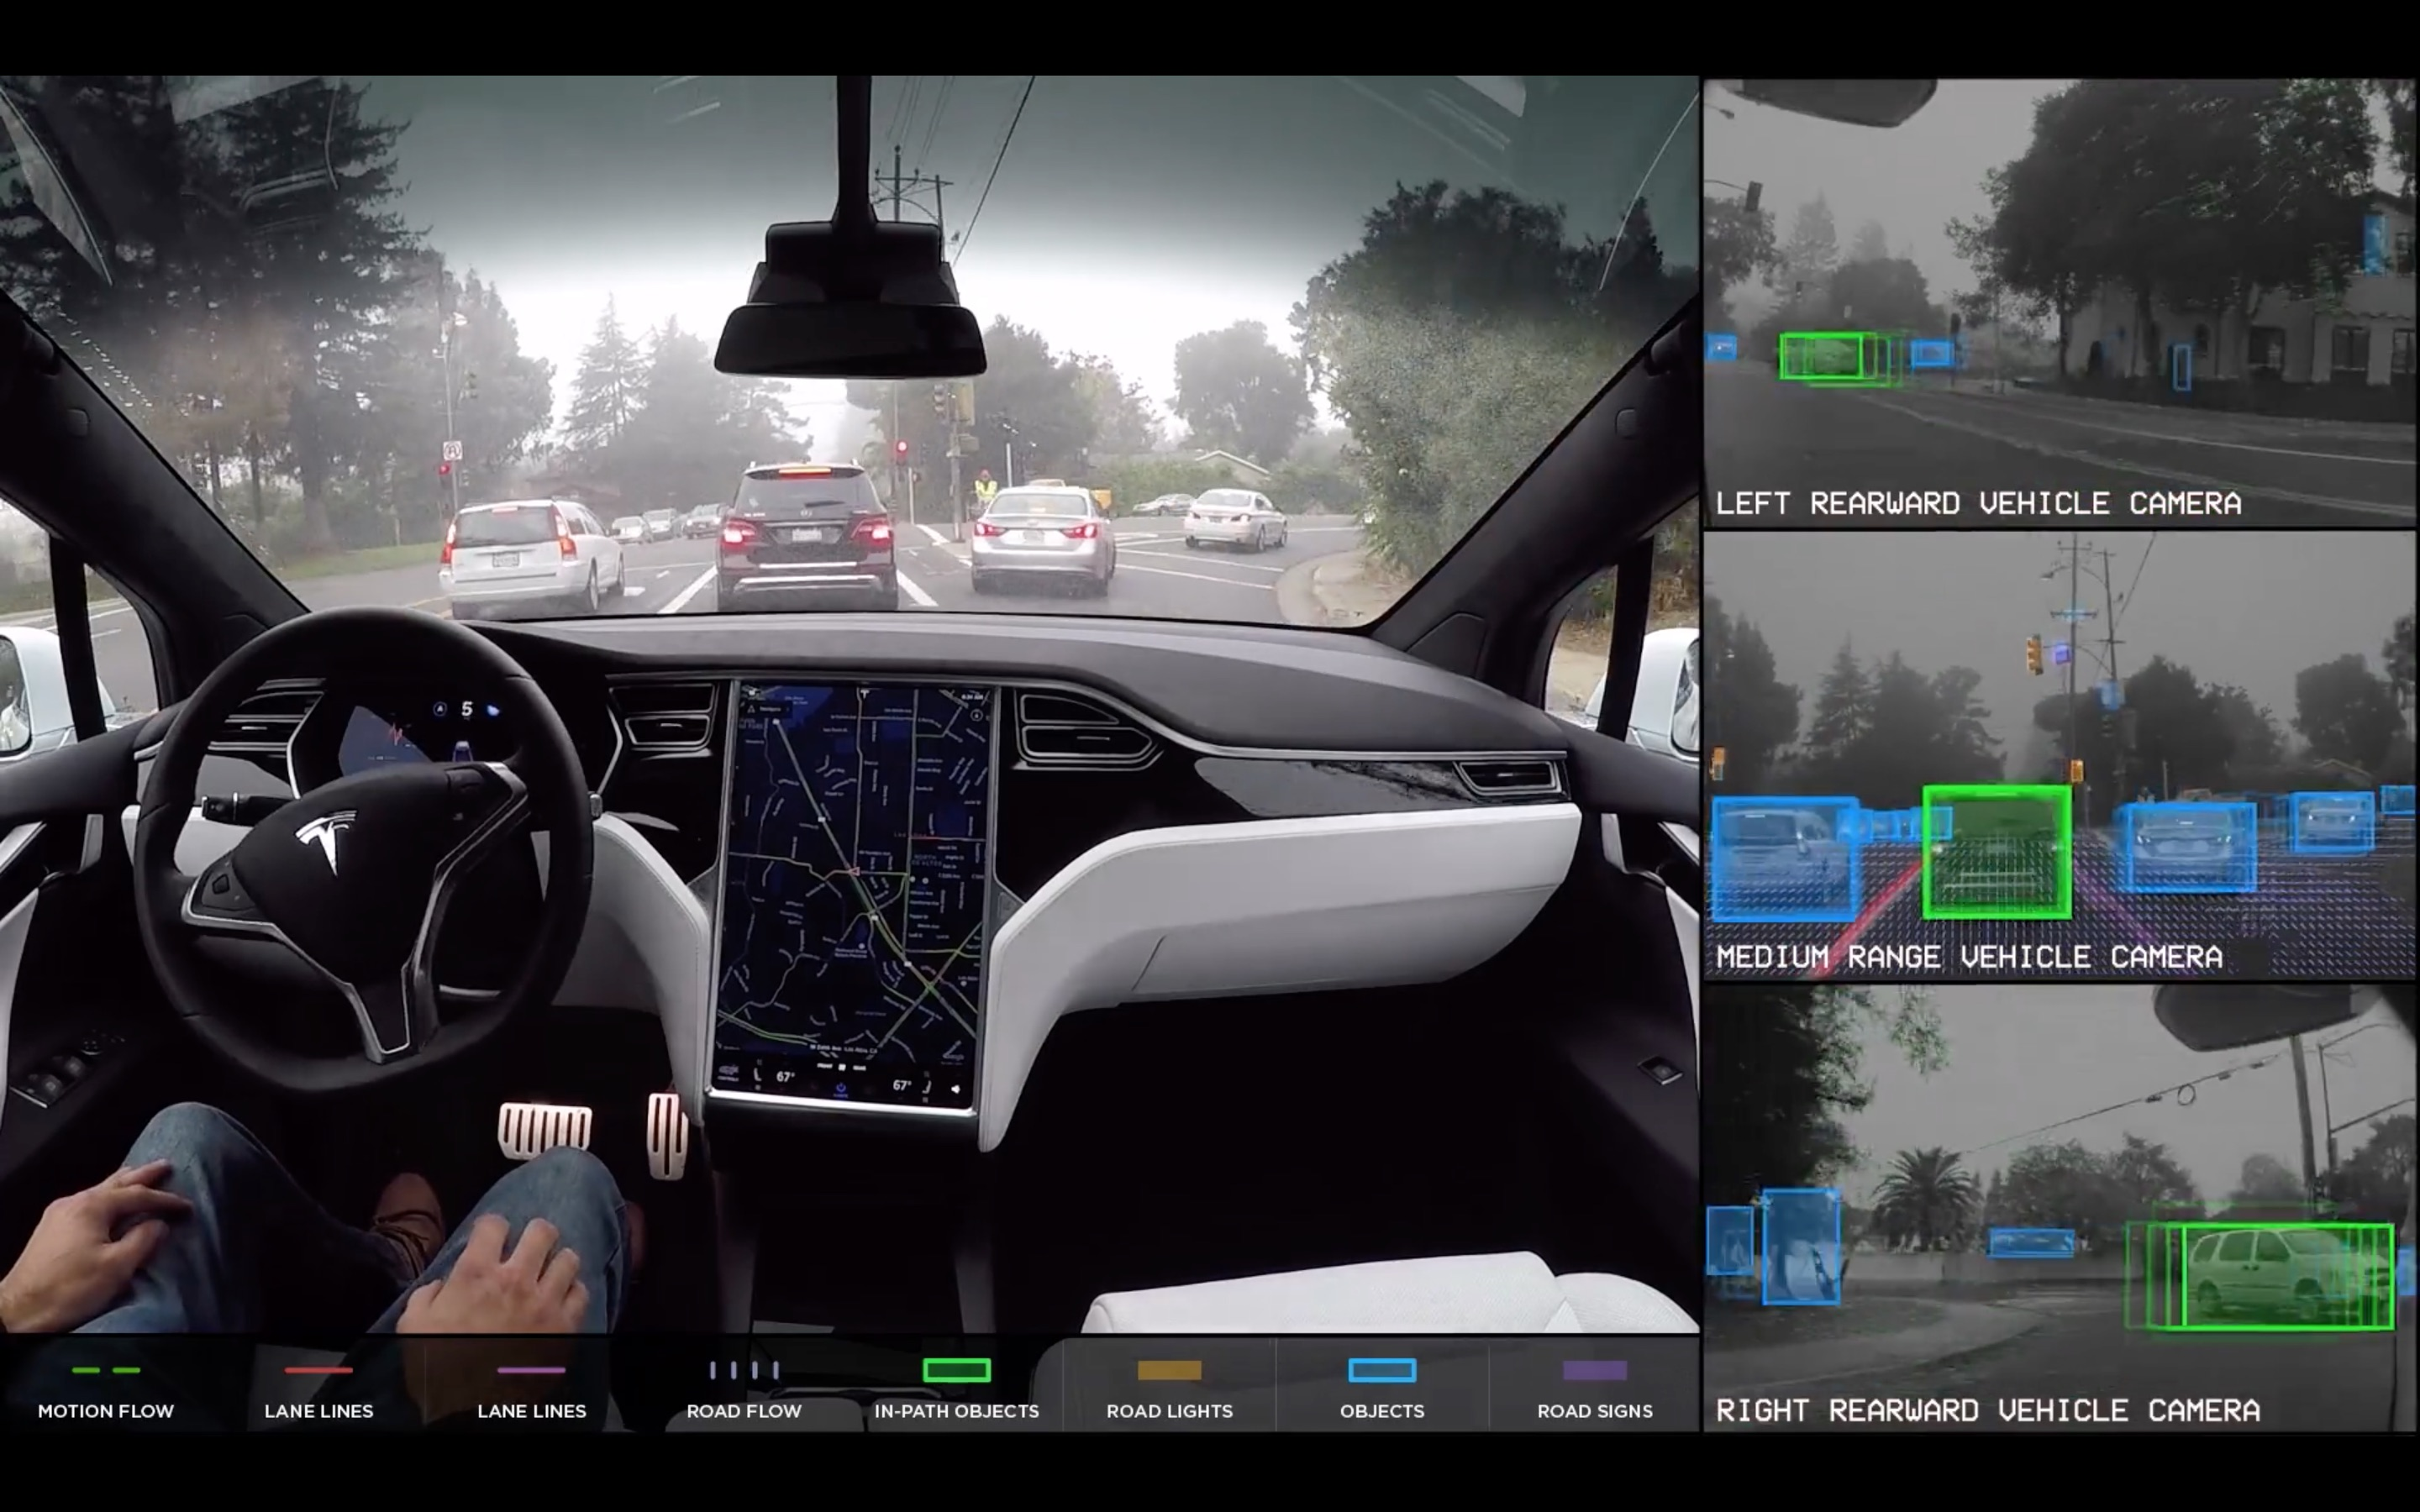 Tesla self-driving car in action